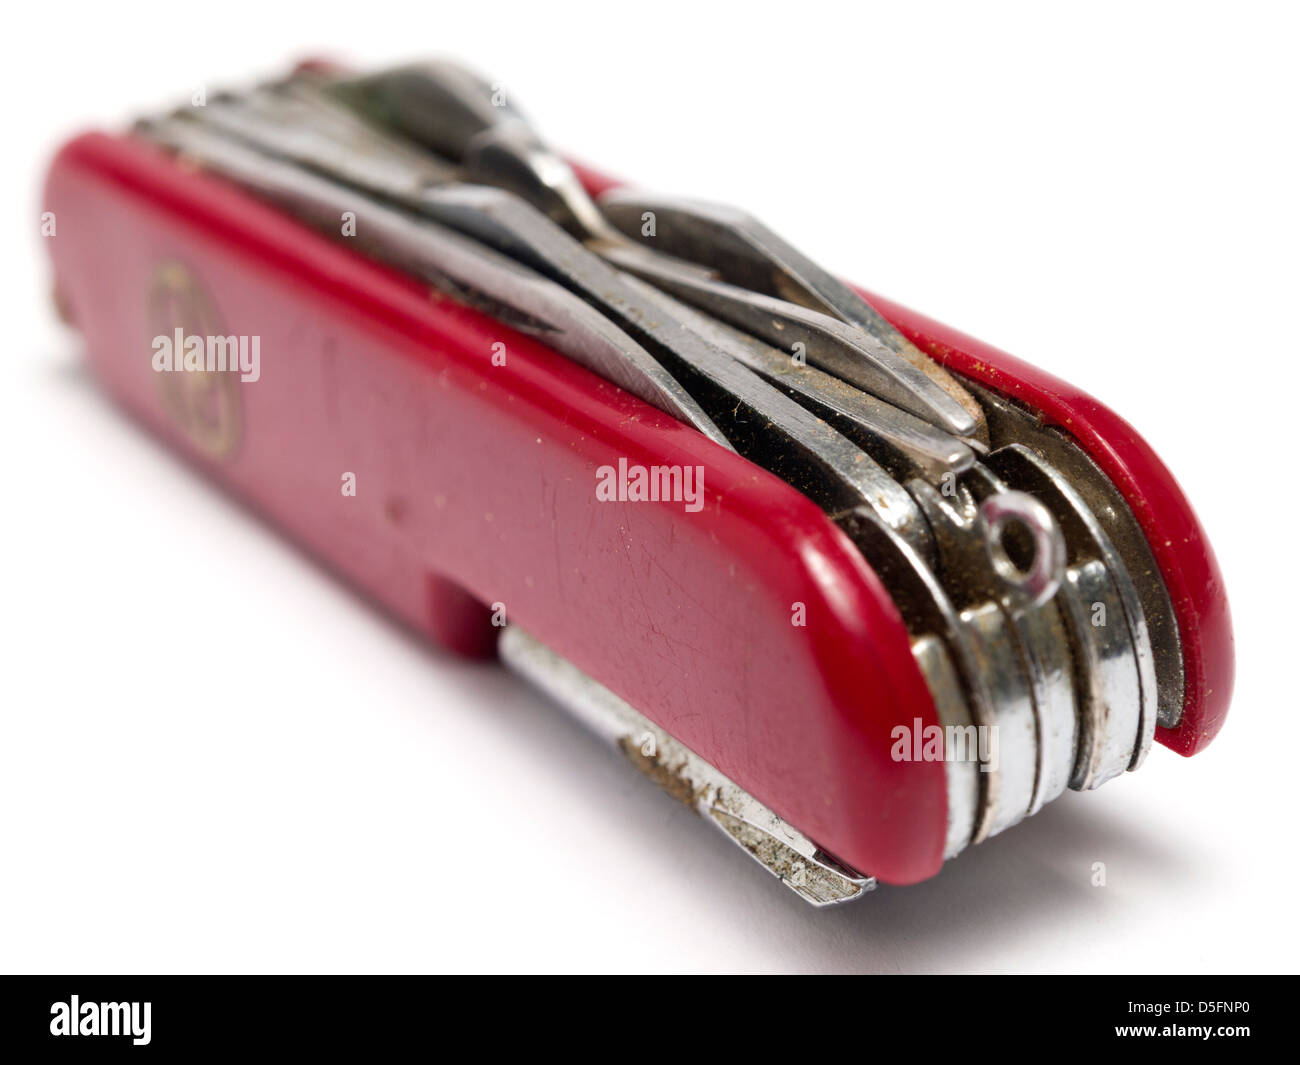 Red swiss army knife isolated on white background - Stock Image